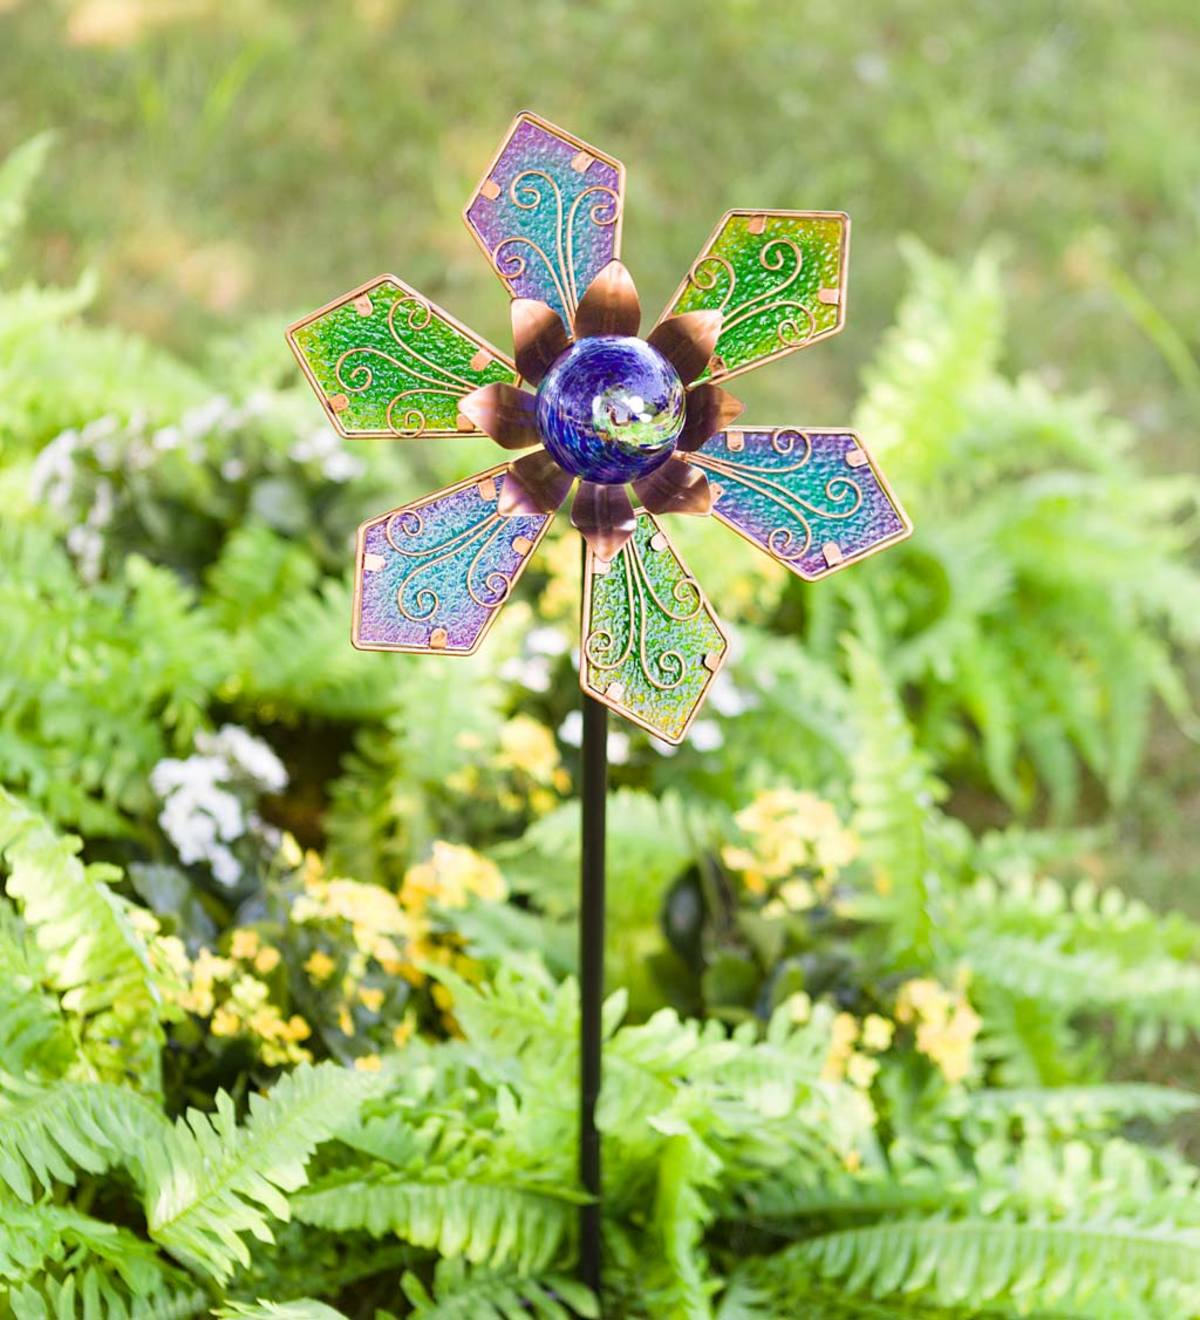 Metal and Glass Decorative Garden Stake with Glow-in-the-Dark Orb